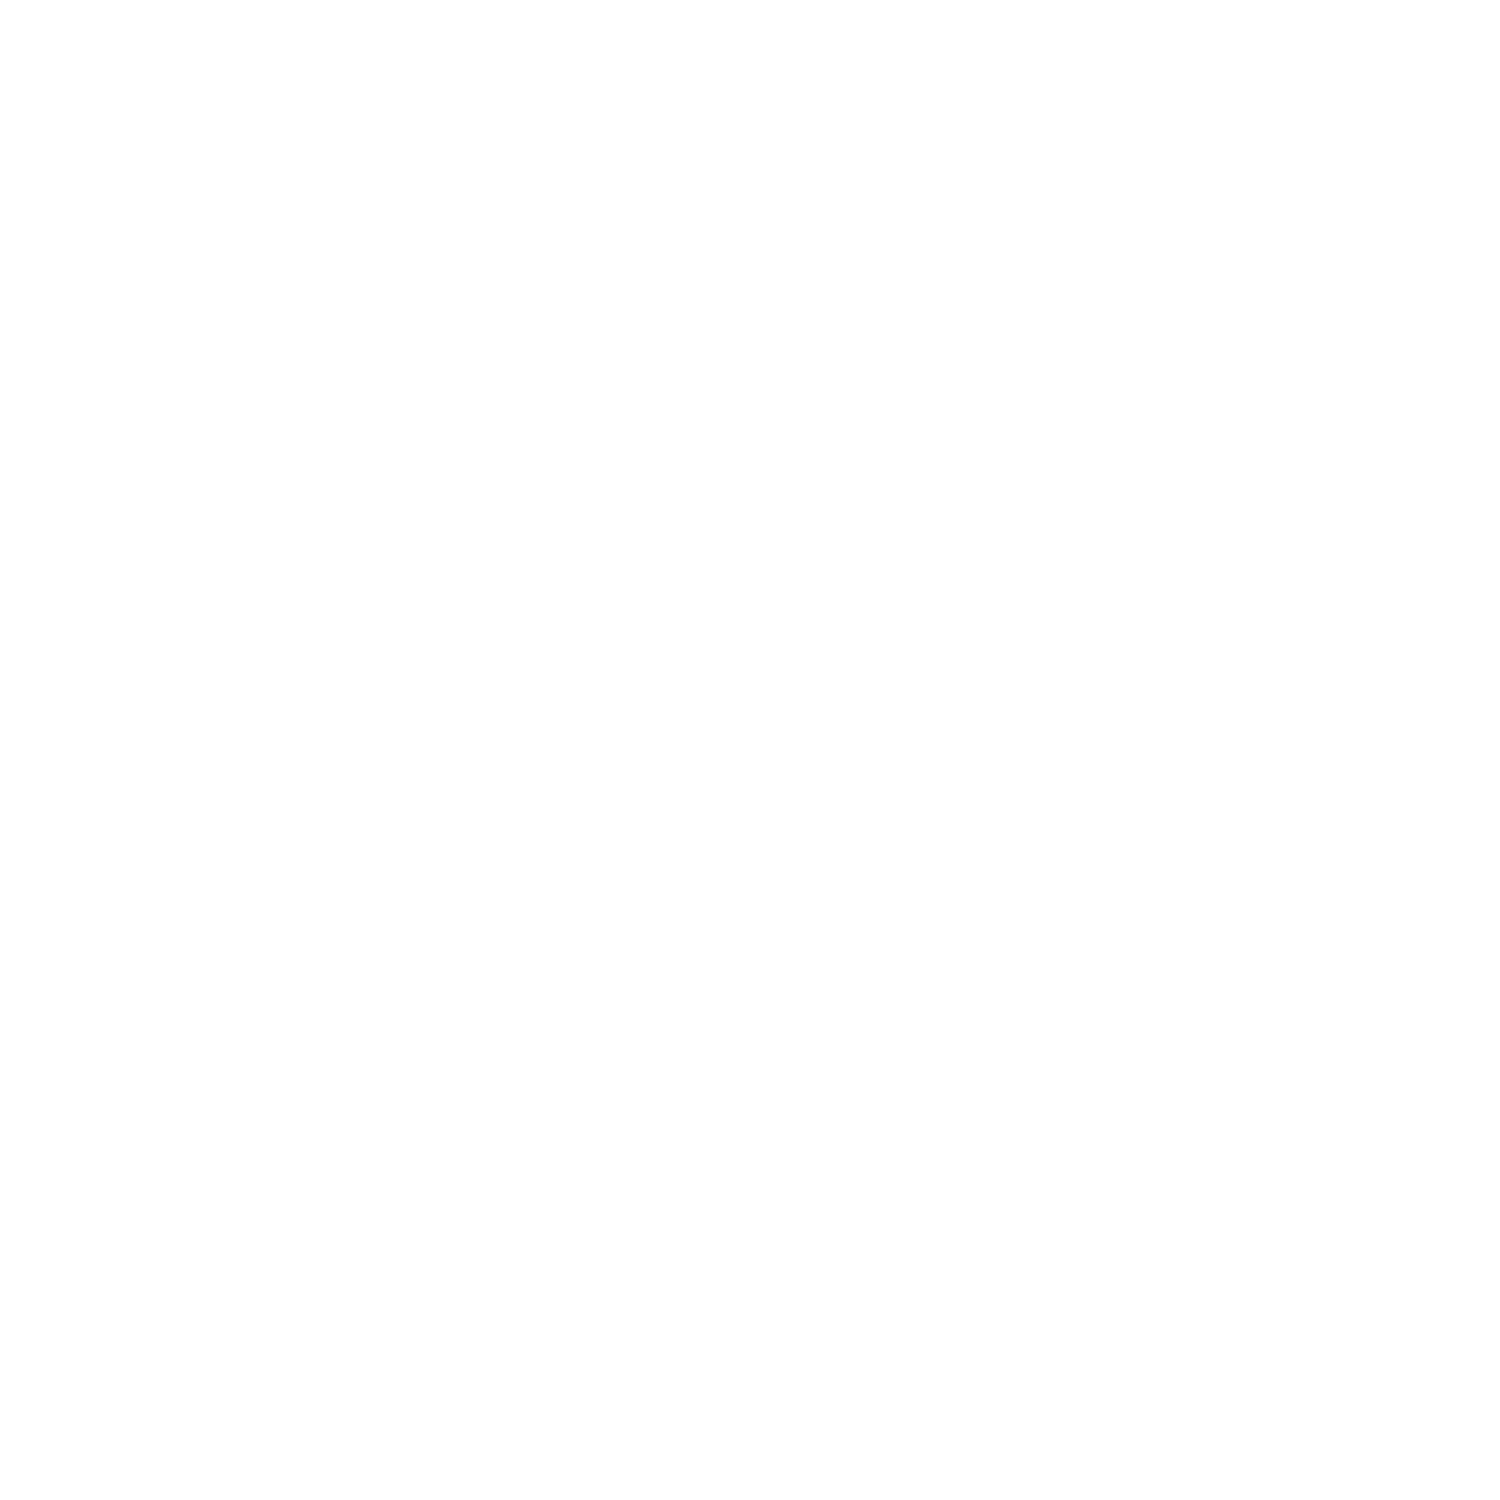 COLORADO SHOWDOWN